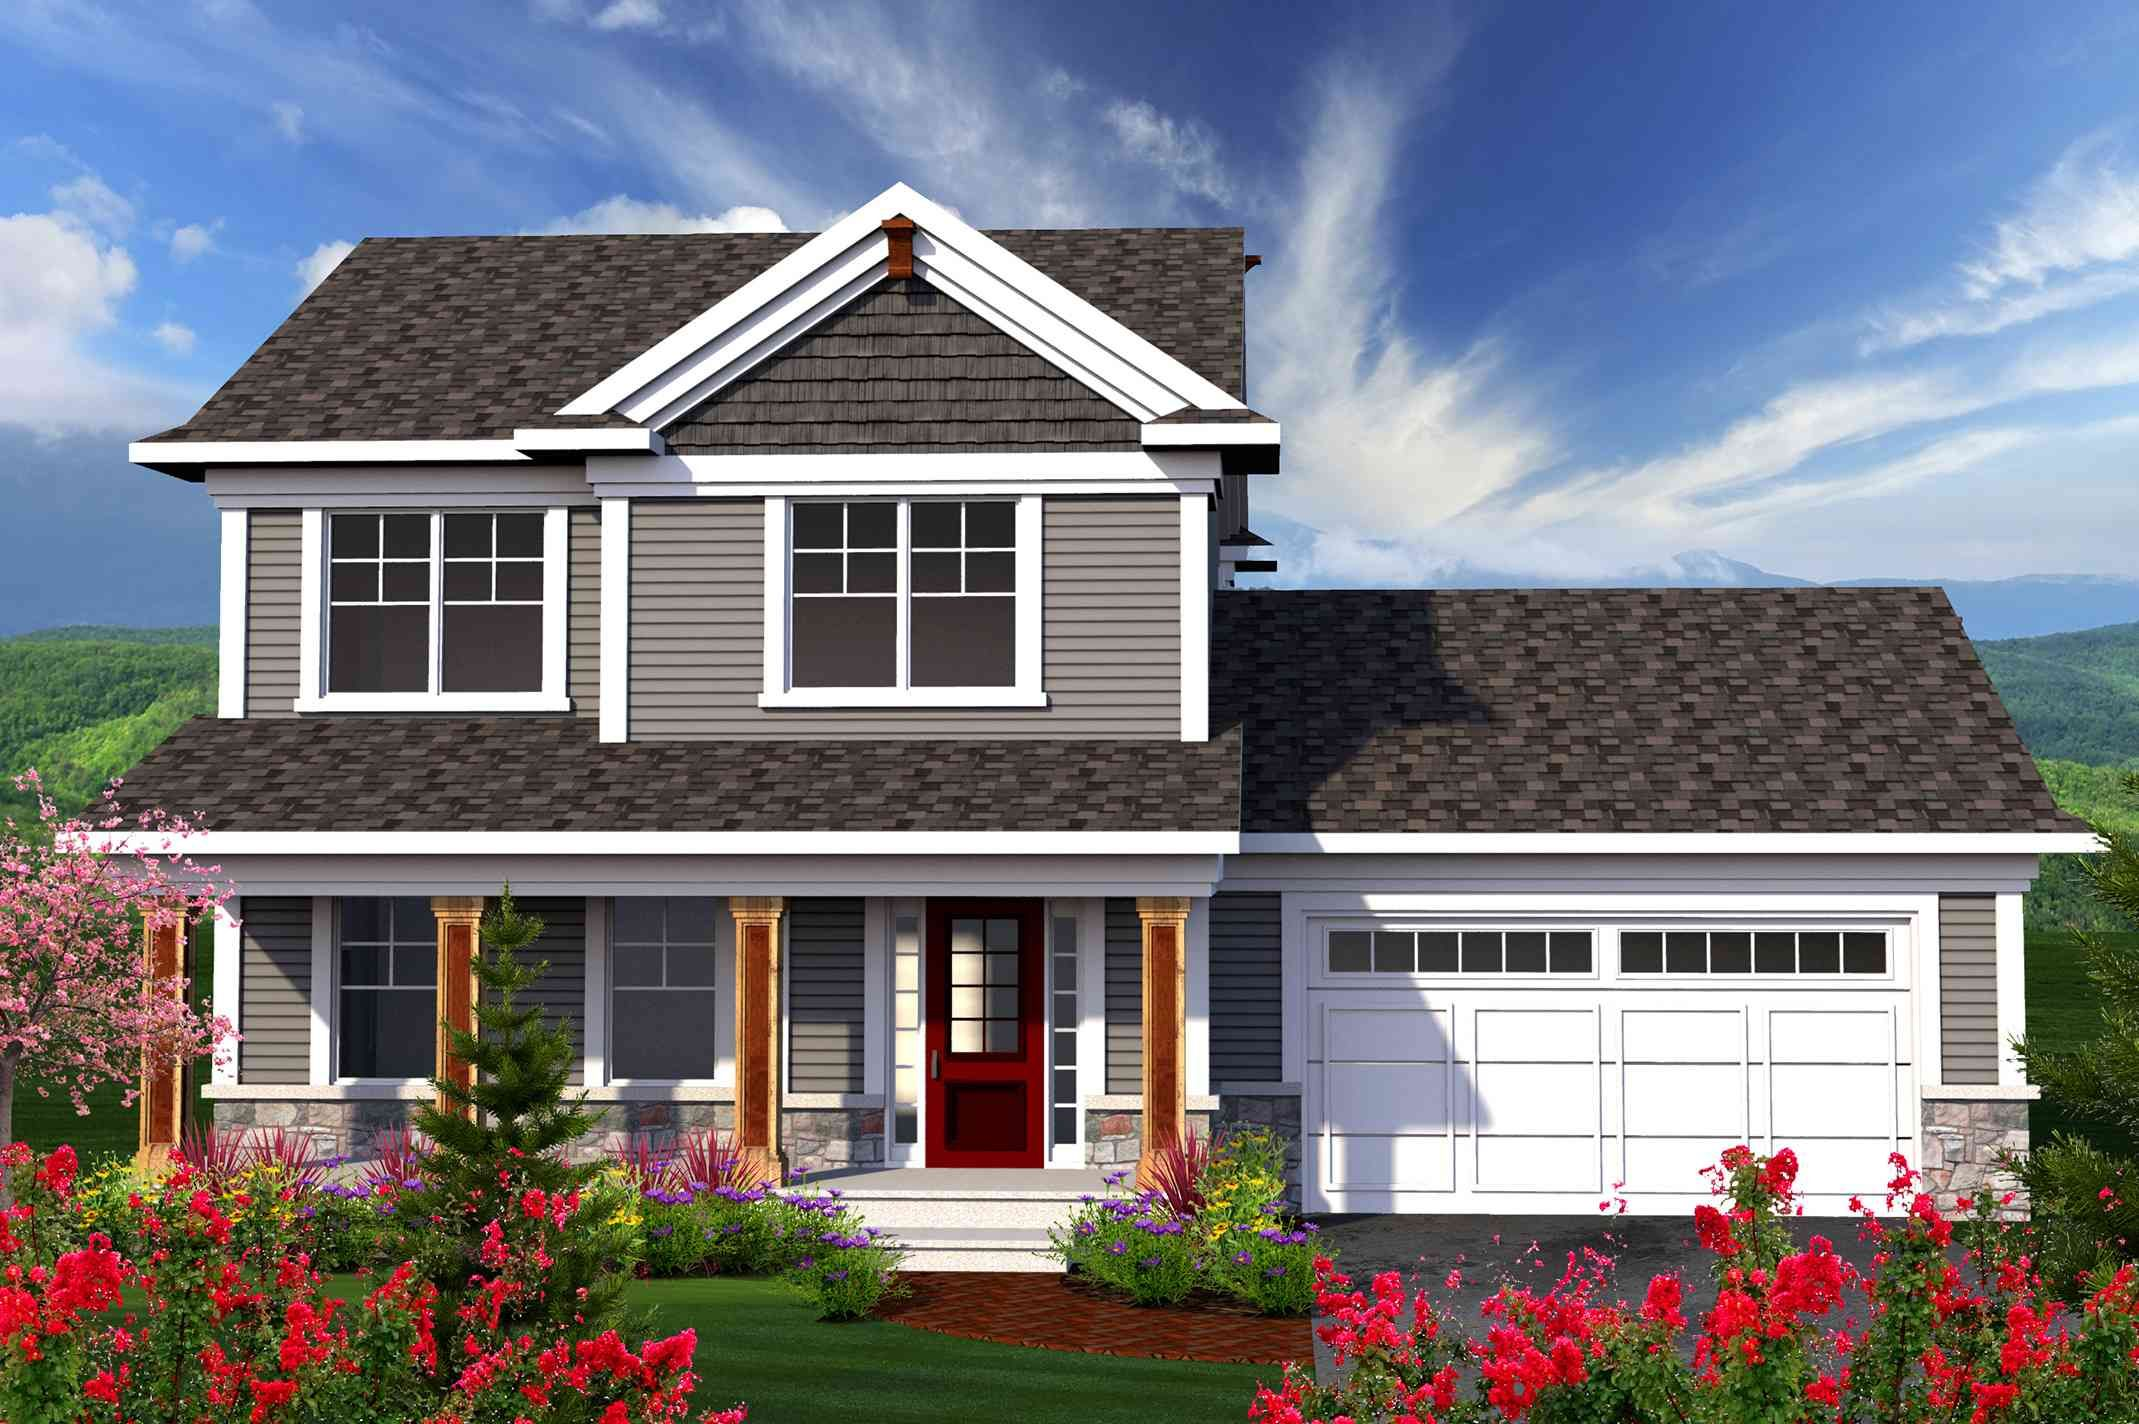 Plan 89906ah 2 Story Home With Large Front Porch Ranch Style House Plans Craftsman House Plans Craftsman House